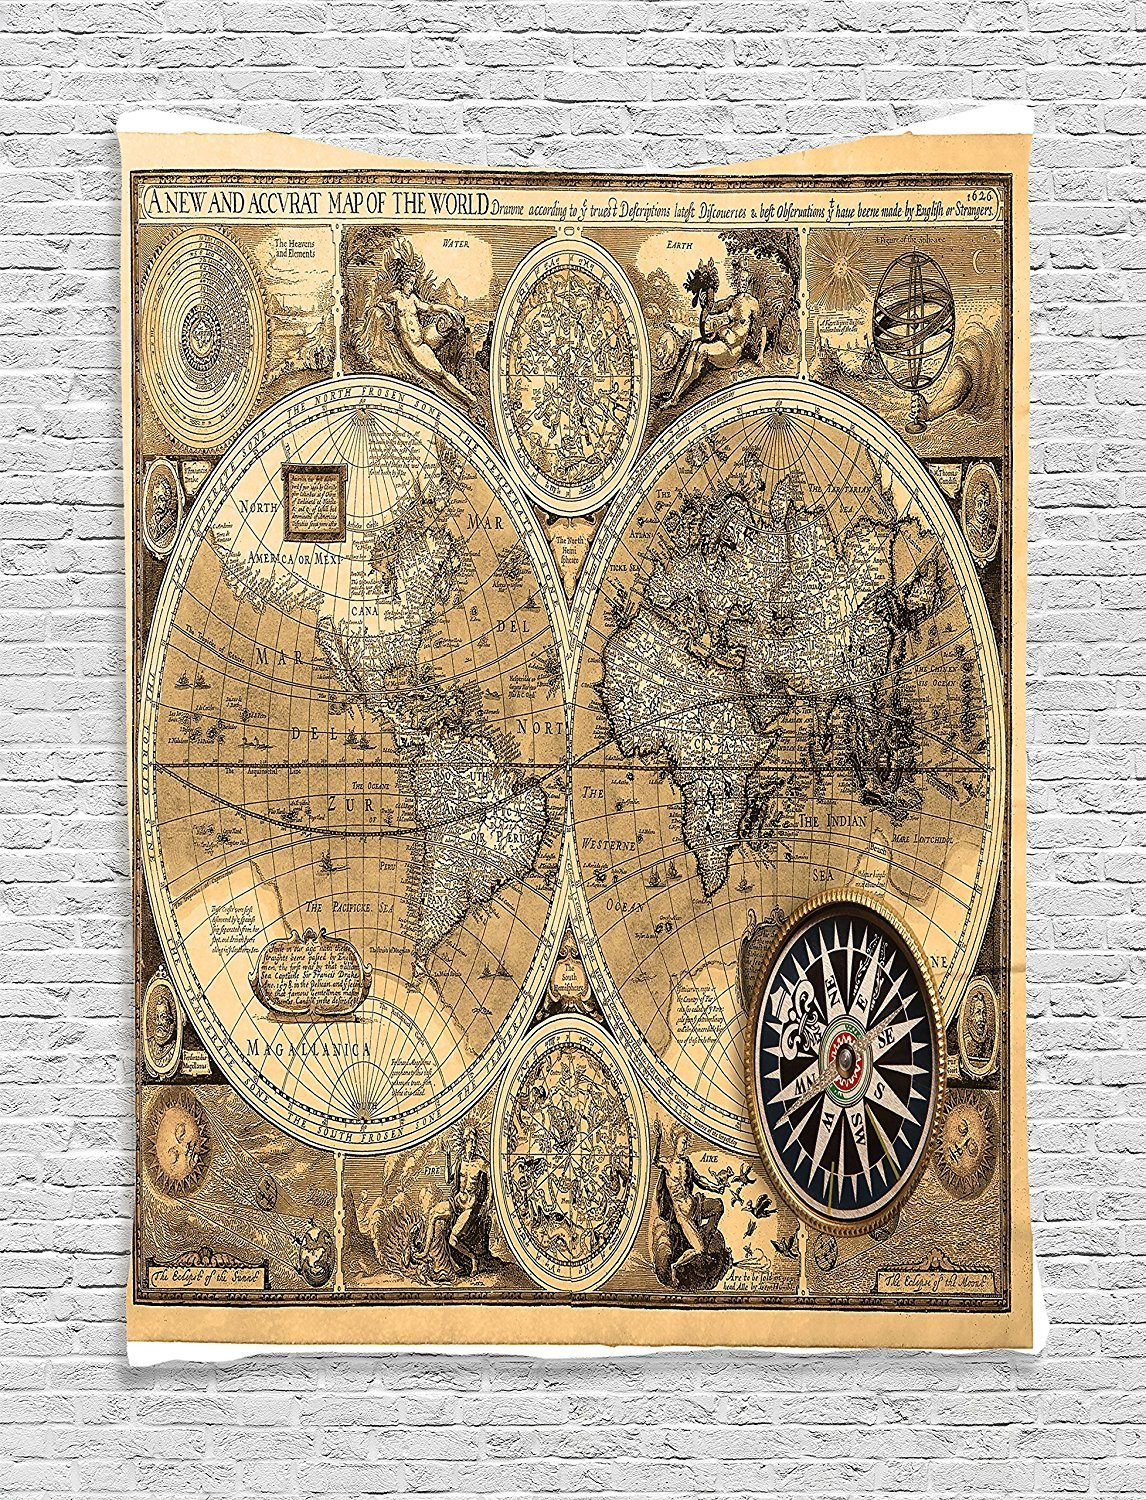 A New And Accvrat Map Of The World 1626.Buy World 1626 A New And Accvrat Map John Speed In Cheap Price On